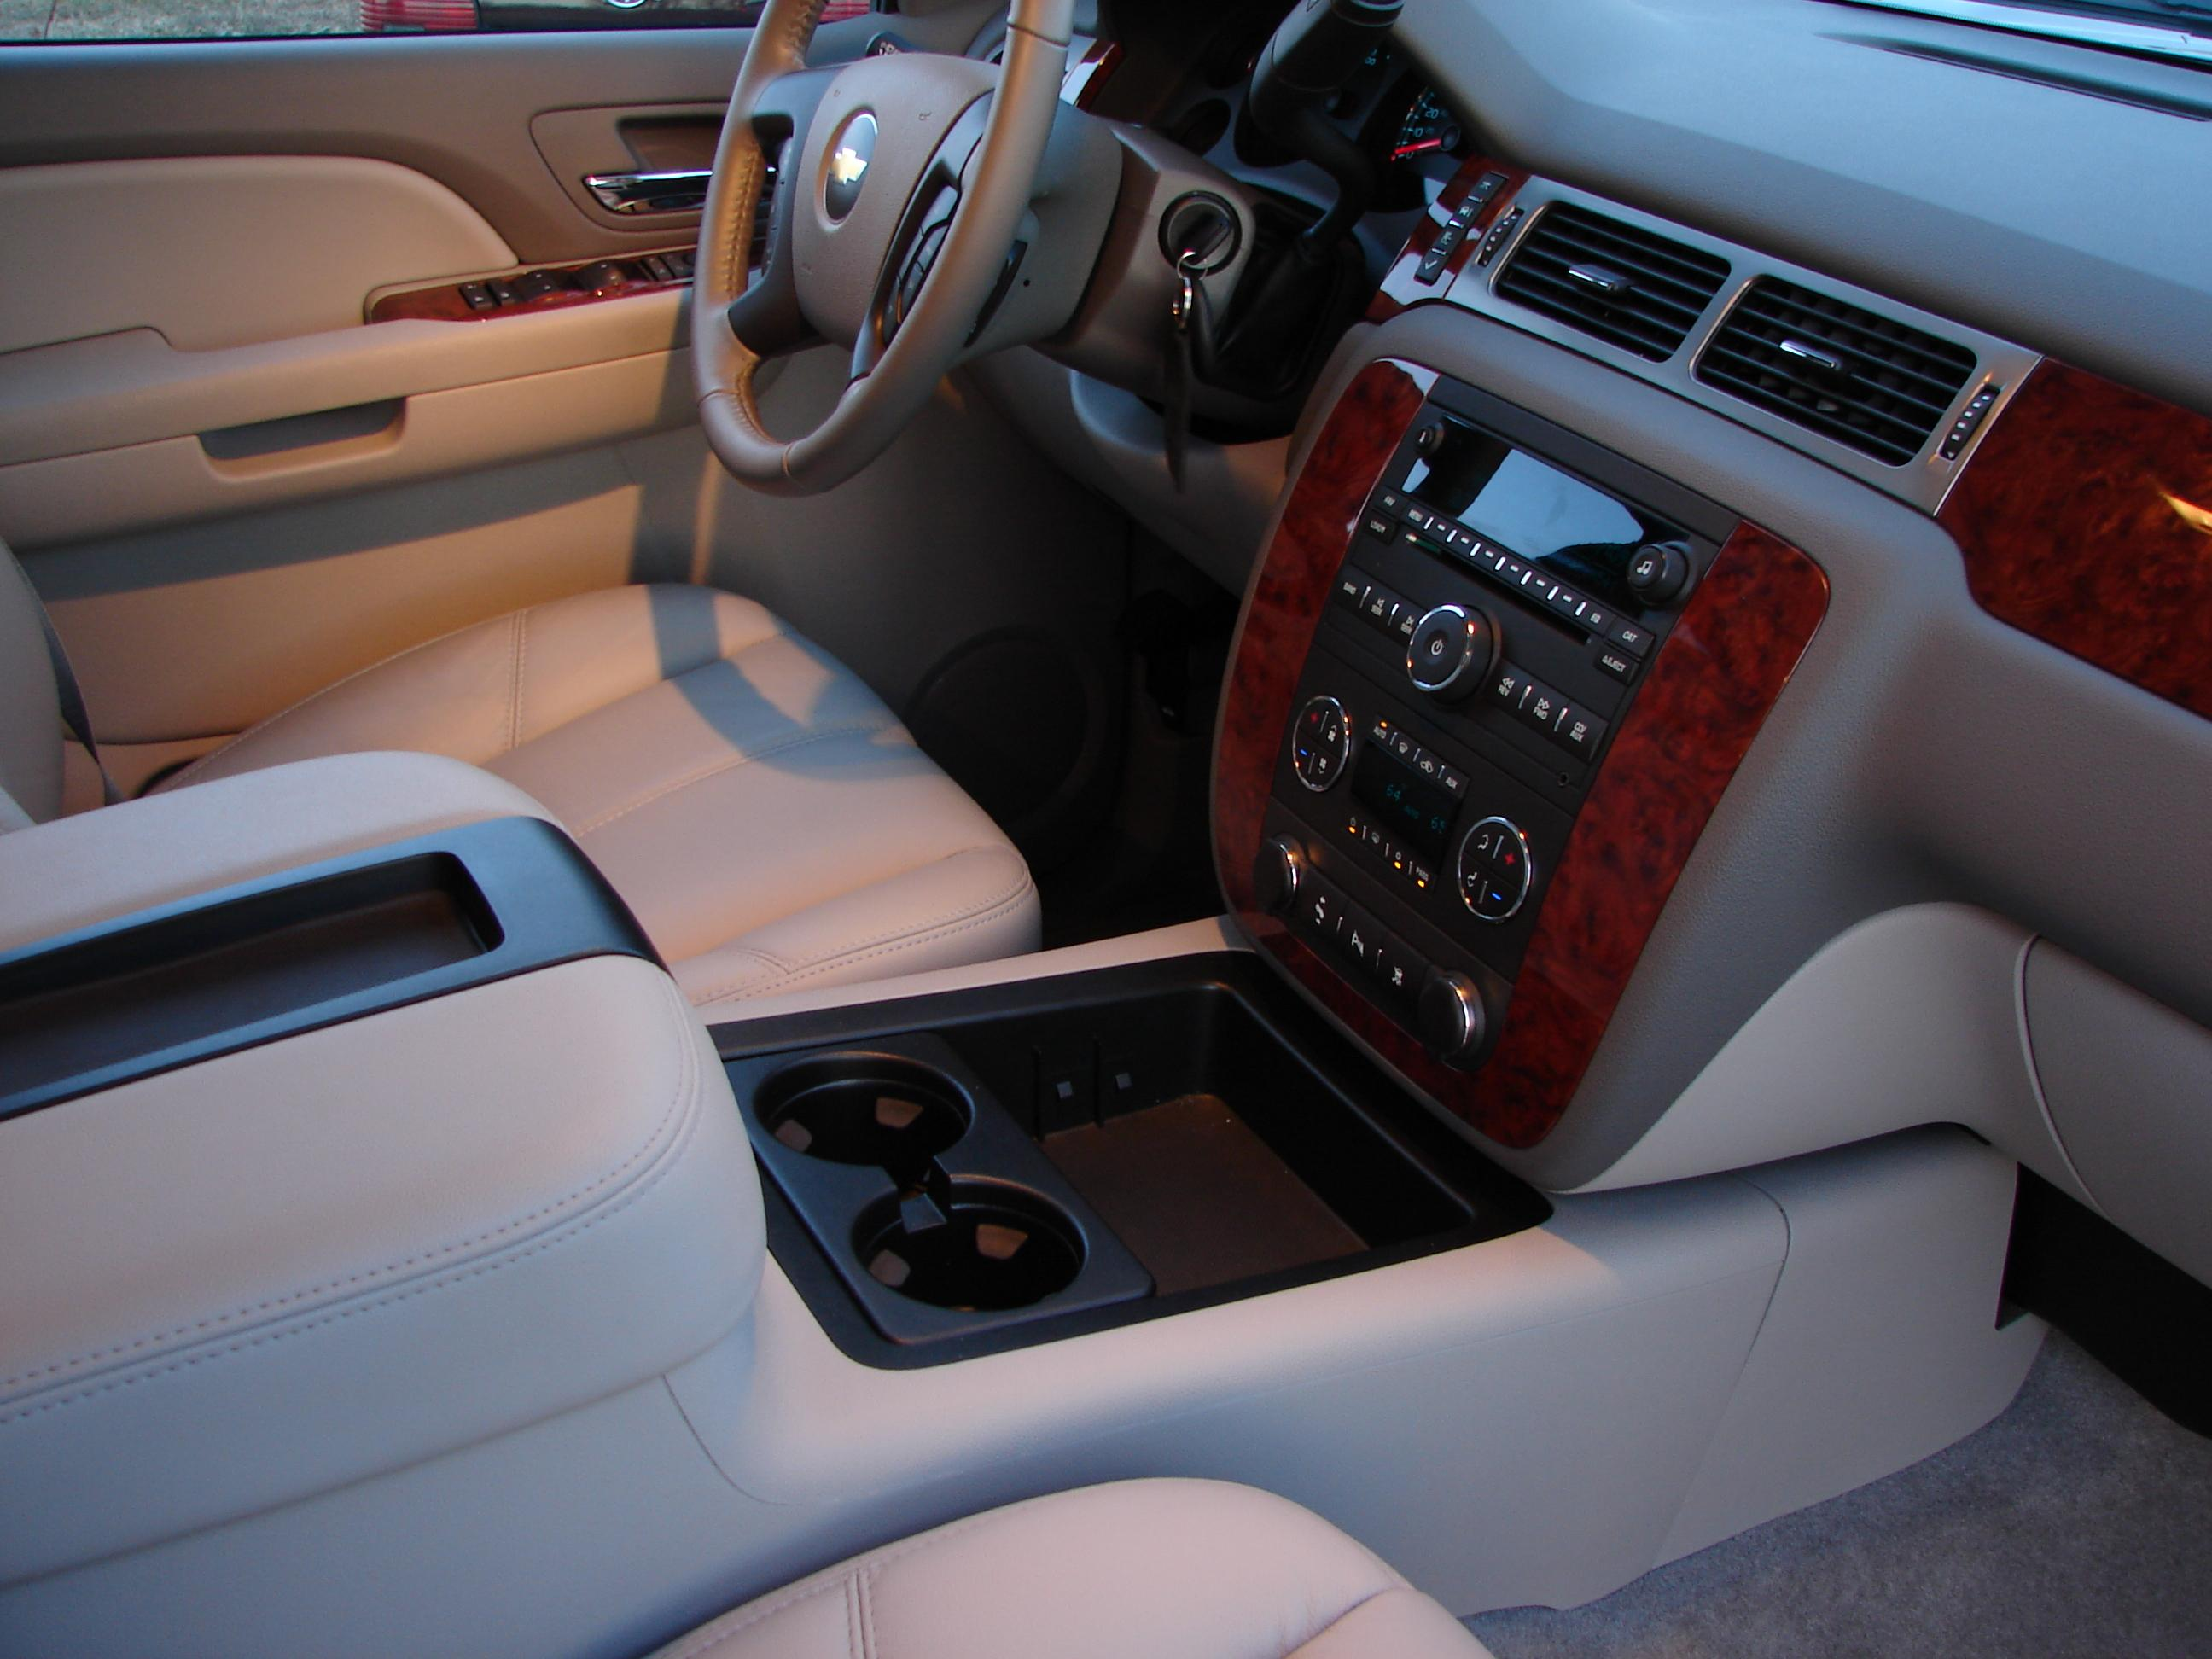 2007 chevy suburban interior accessories - Chevy truck interior accessories ...